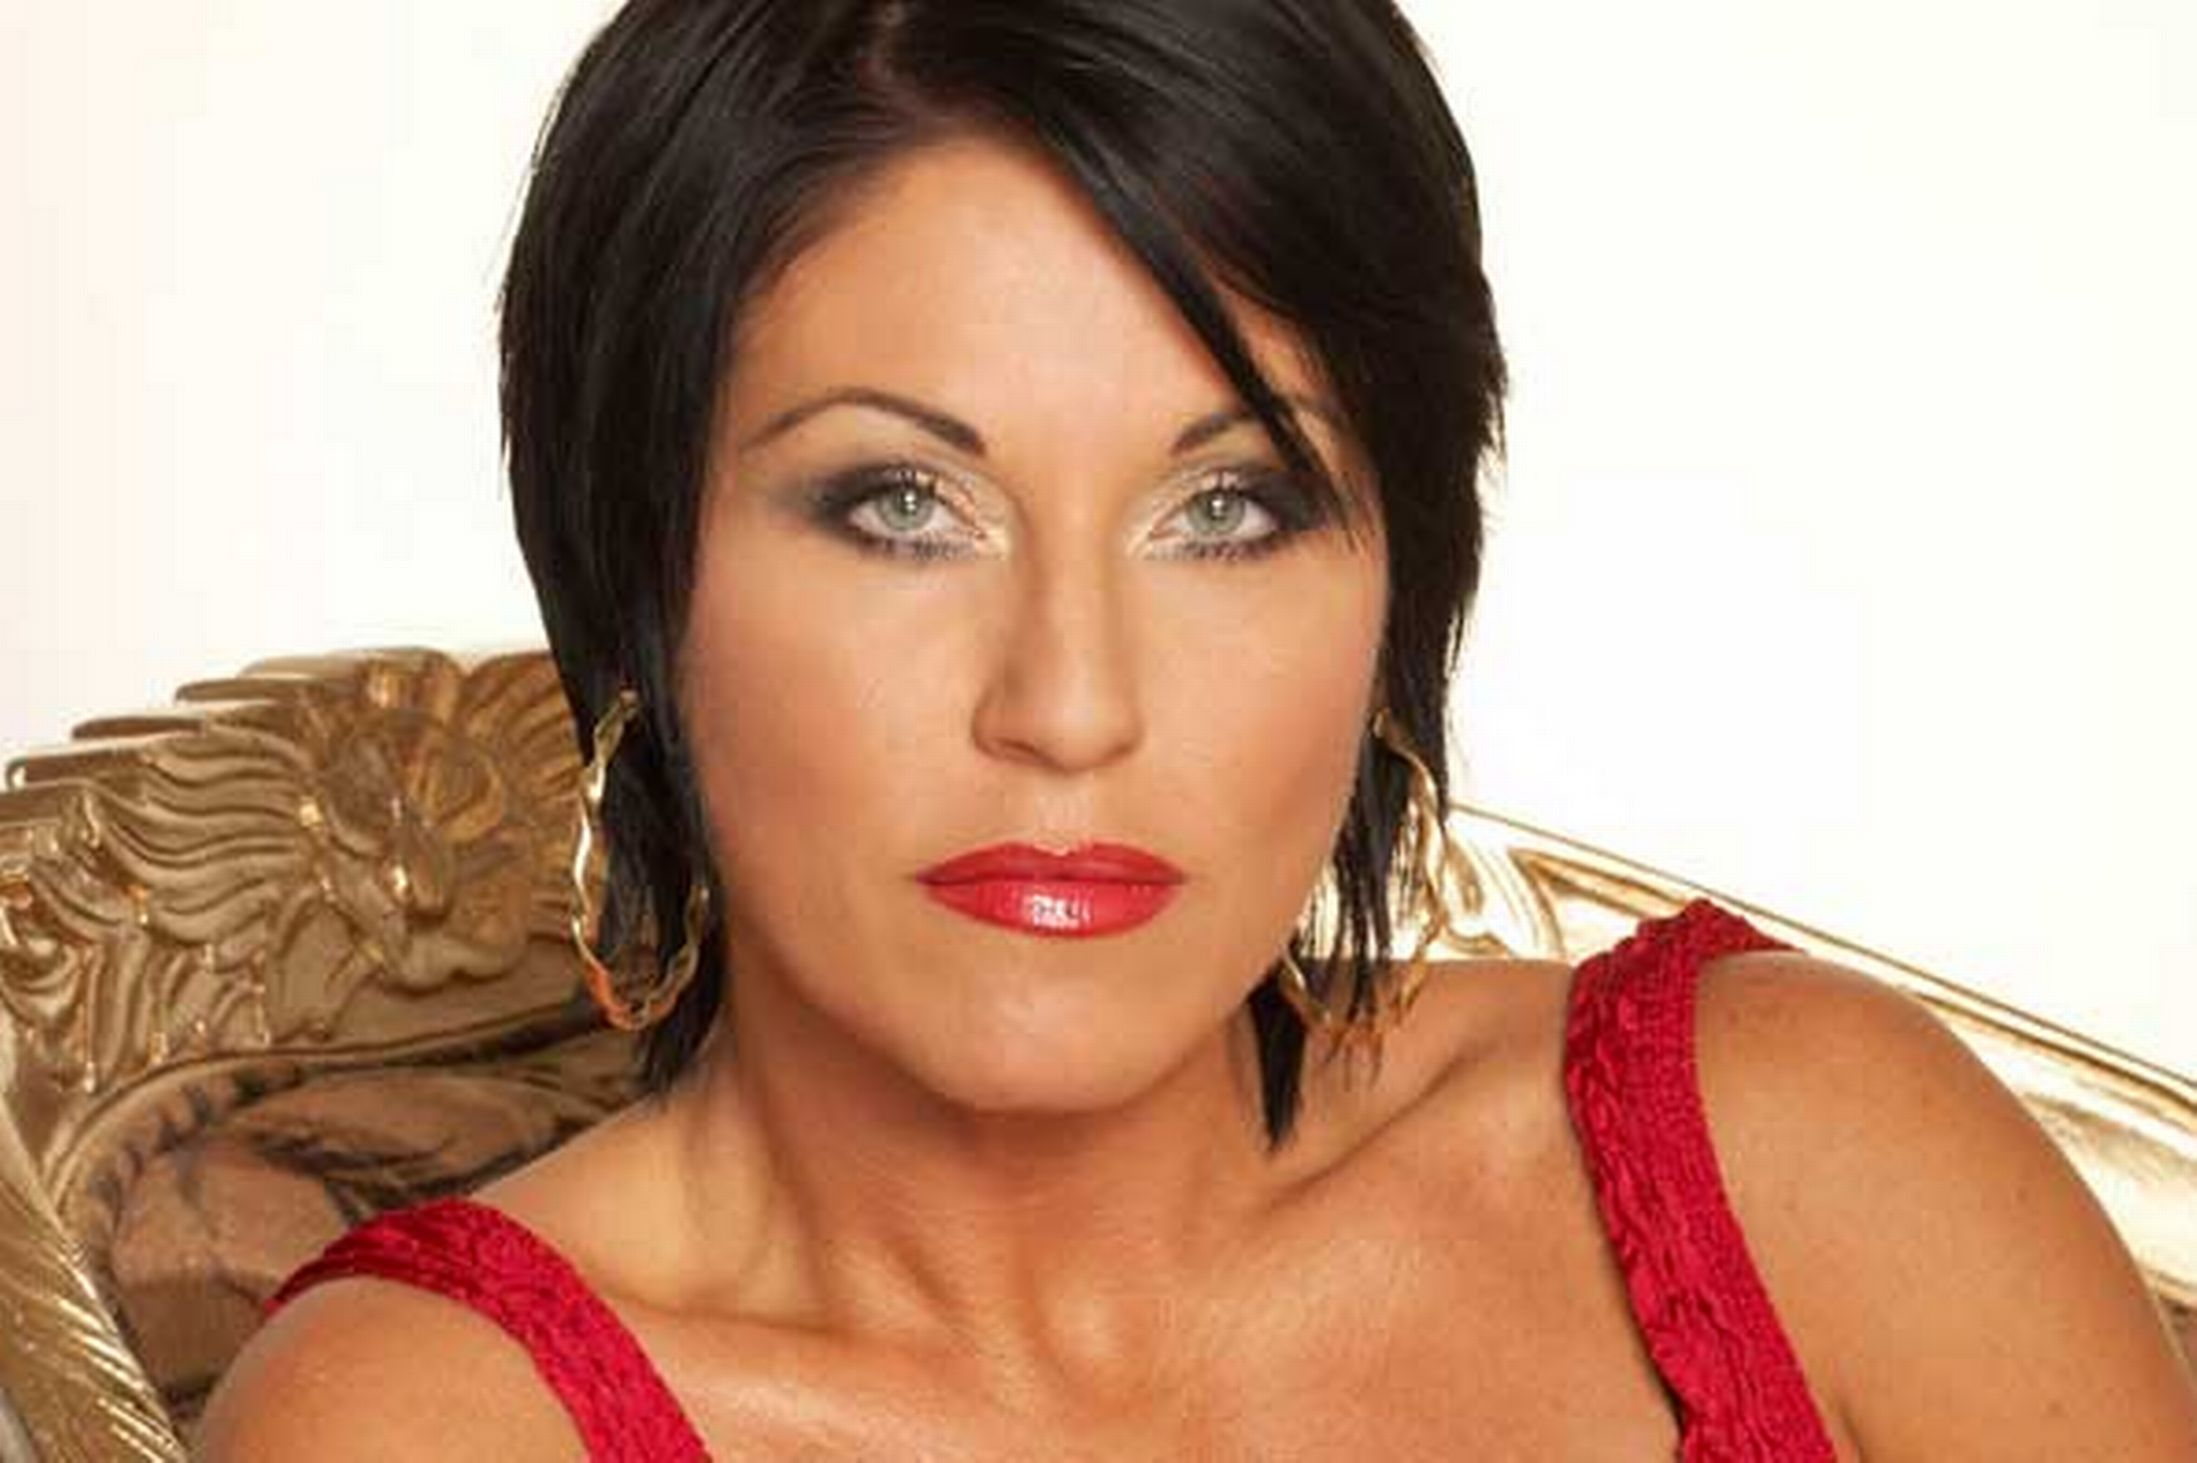 Jessie wallace pics — photo 7